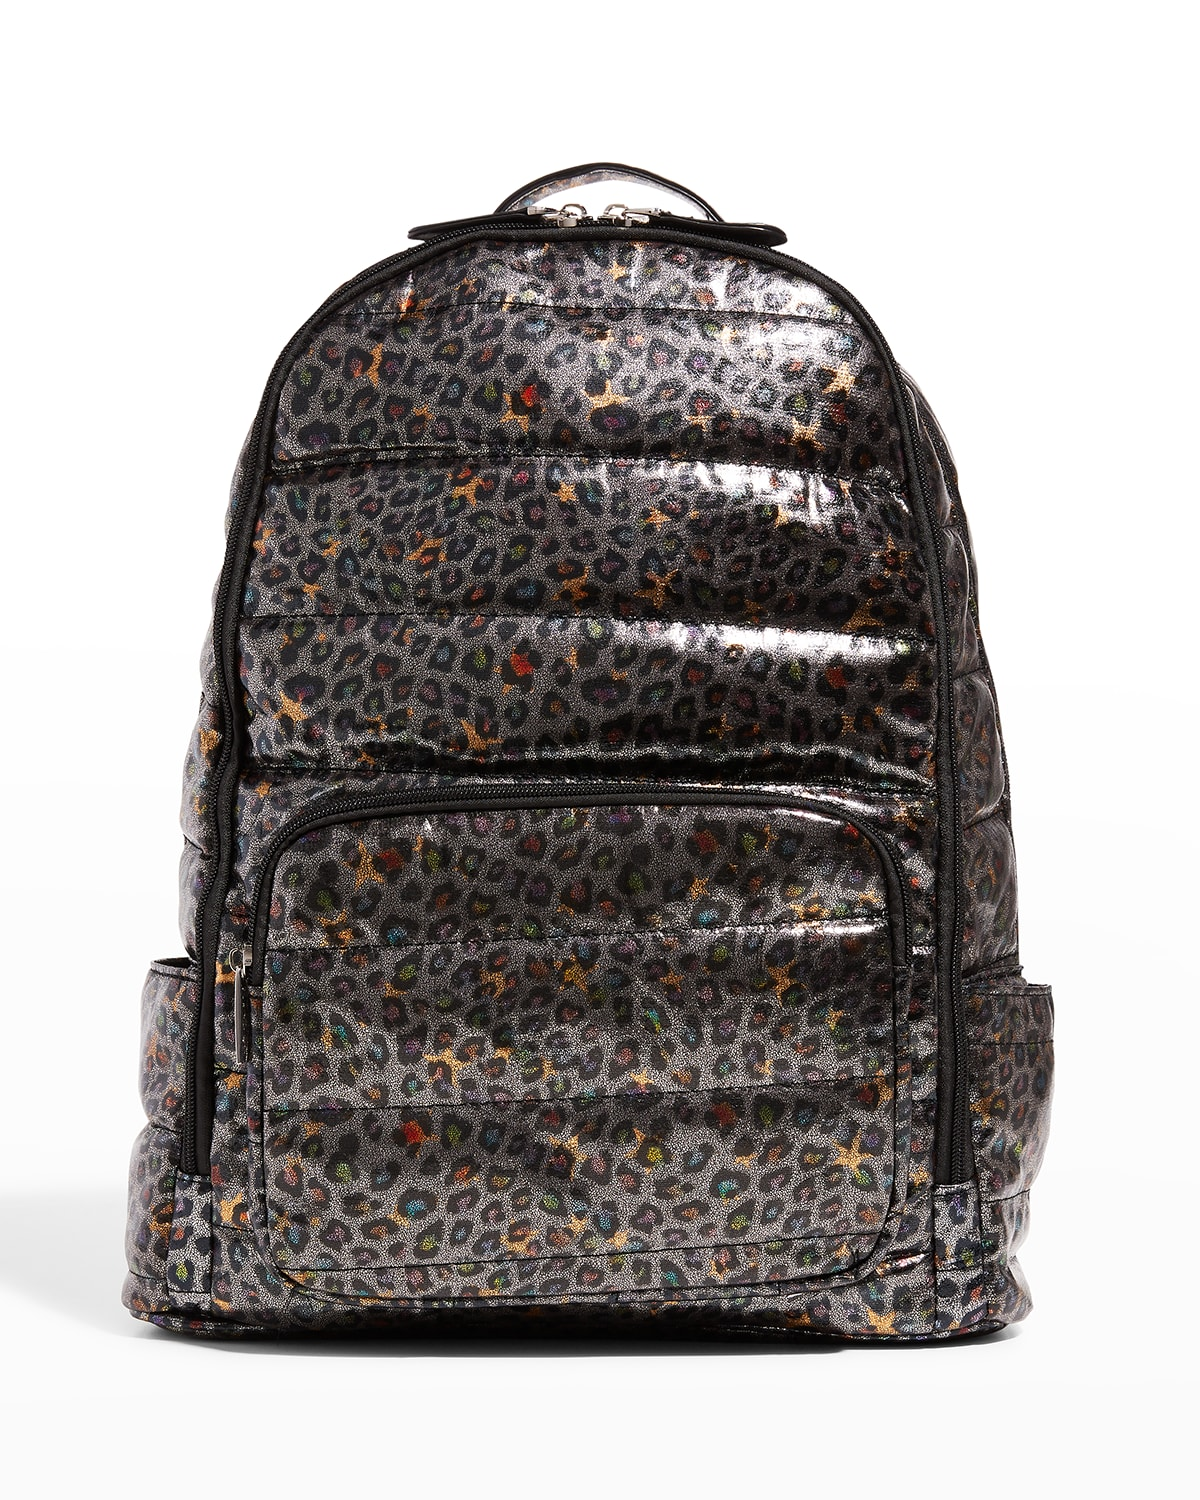 Kid's Leopard Quilted Puff Backpack